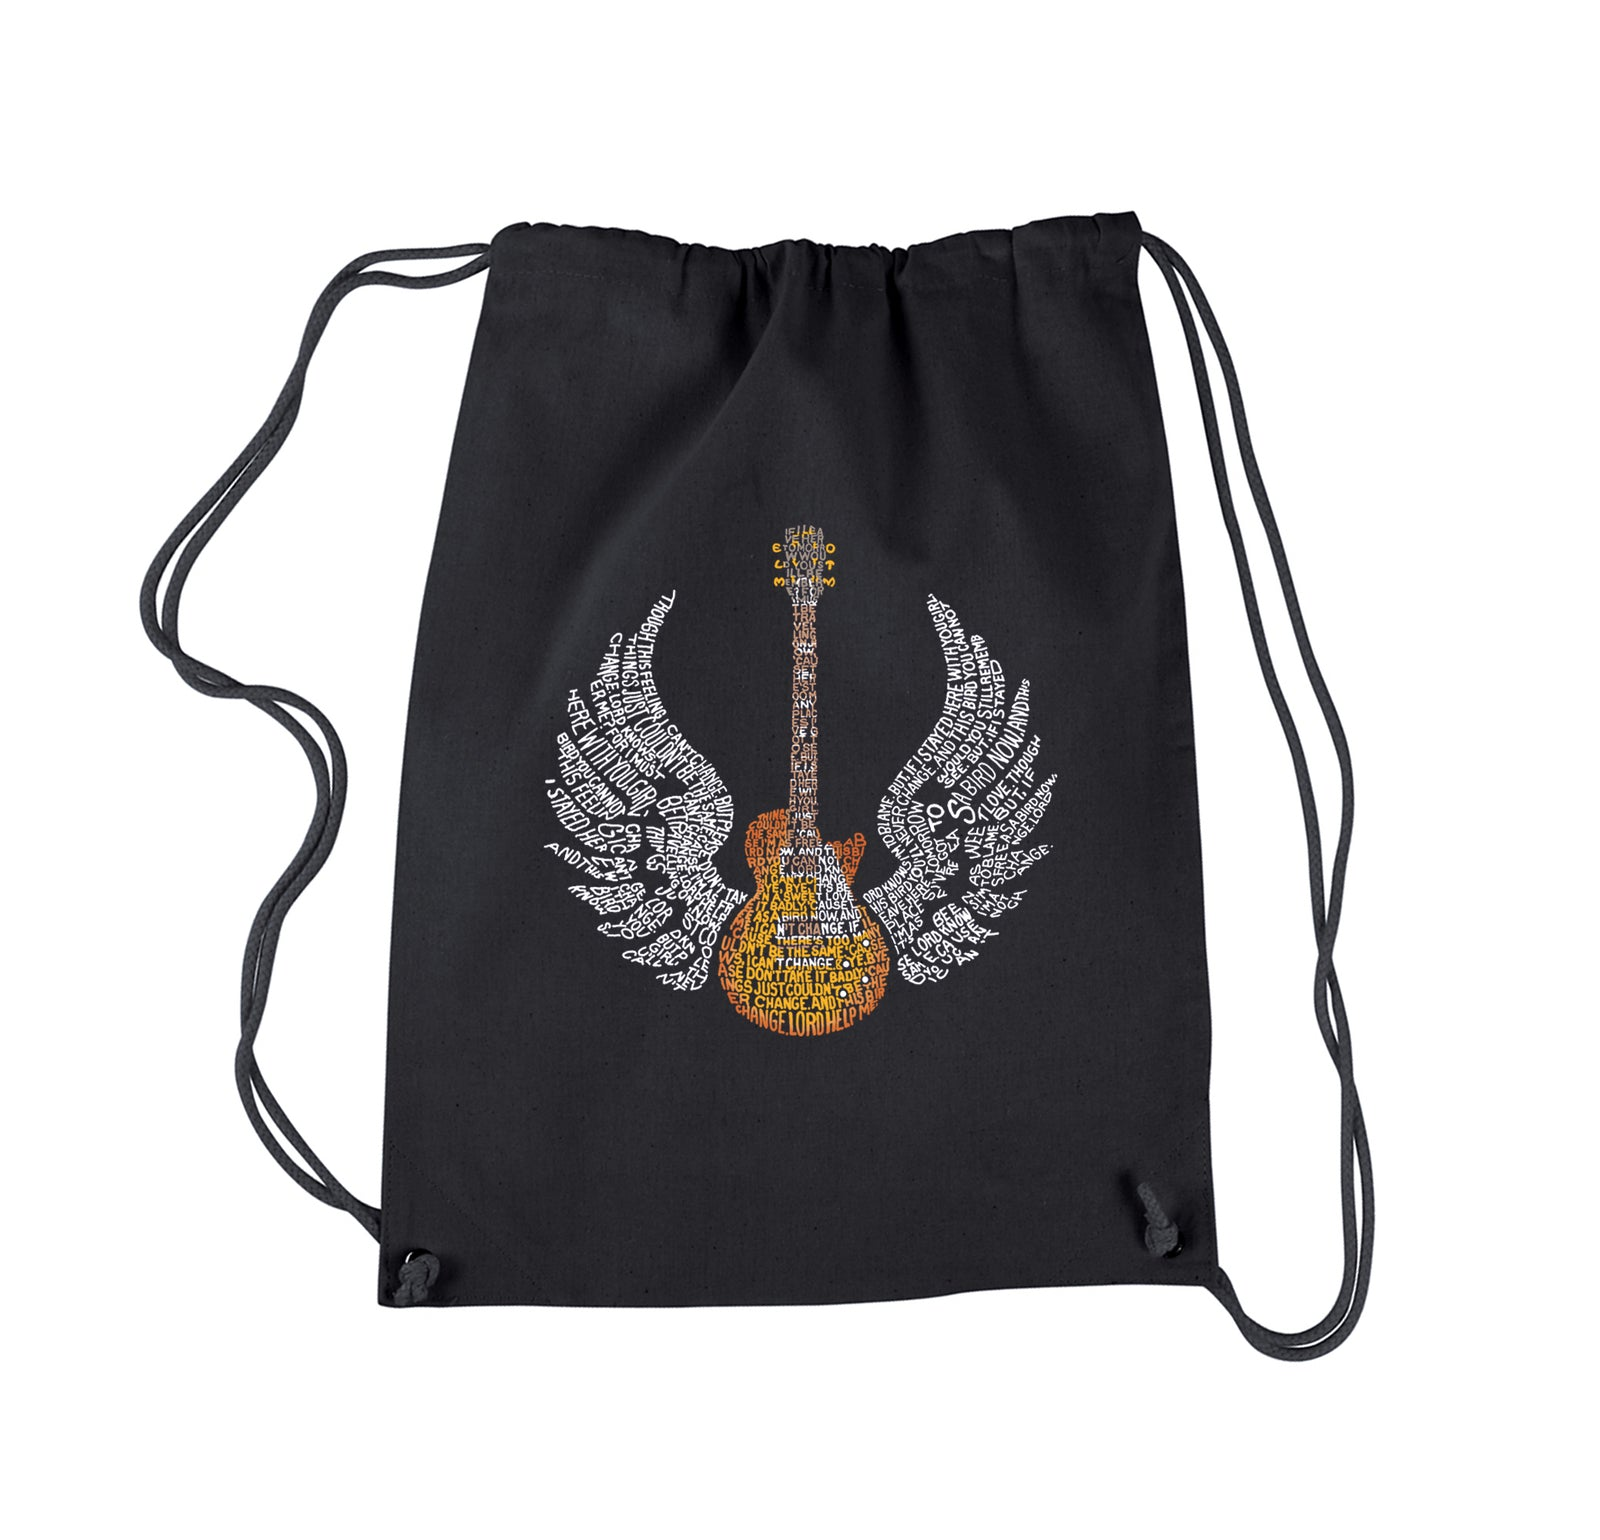 Drawstring Backpack - LYRICS TO FREE BIRD